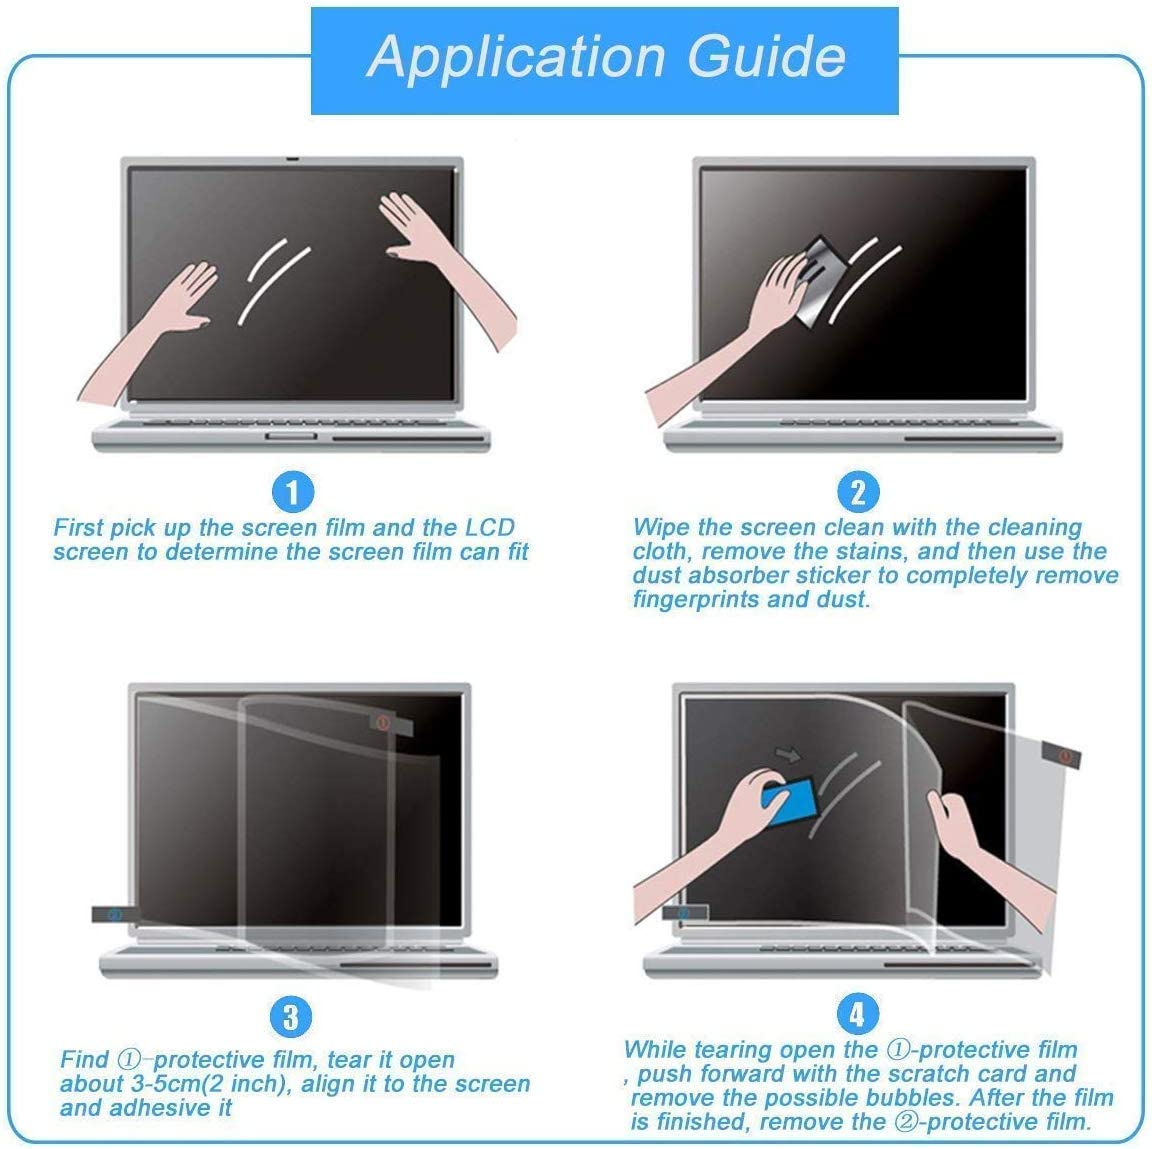 20.6x11.6 23.6 Eyes Protection Anti Blue Light Anti Glare Screen Protector fit 23.6 Inches Widescreen Desktop Monitor Screen Reduces Digital Eye Strain Help You Sleep Better